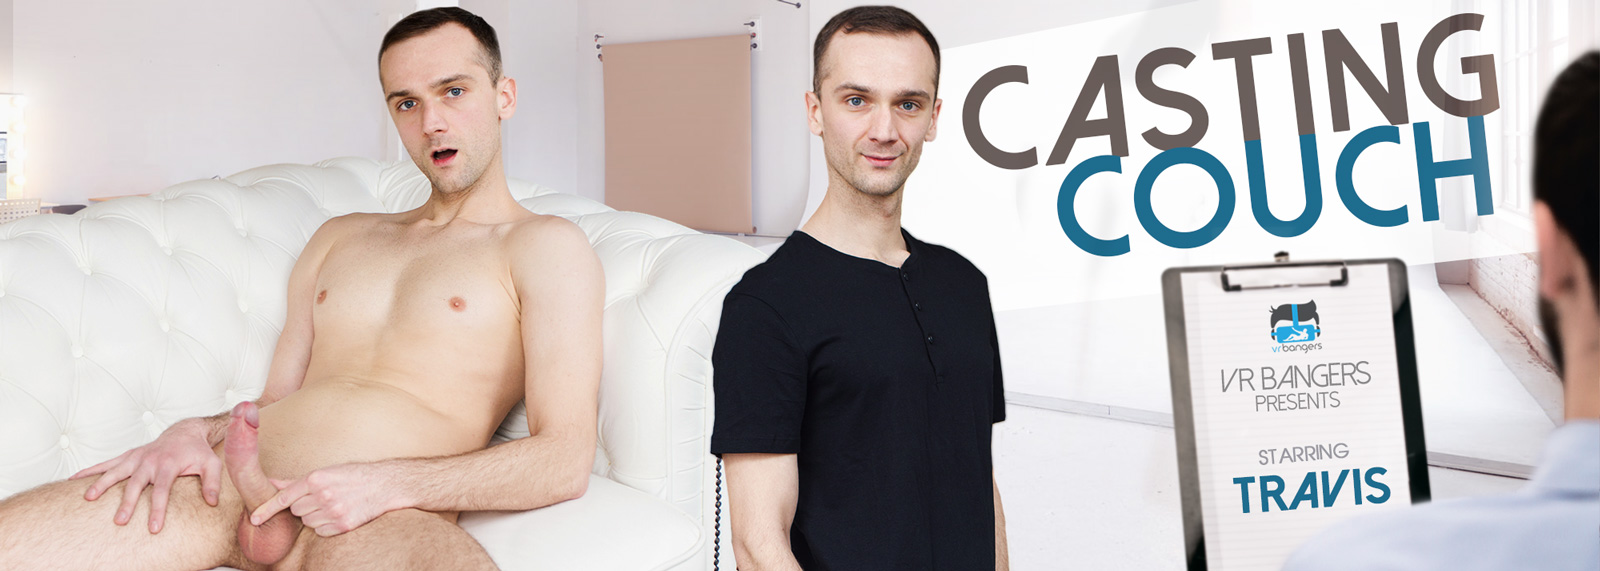 Casting Couch - VR Porn Video, Starring Travis